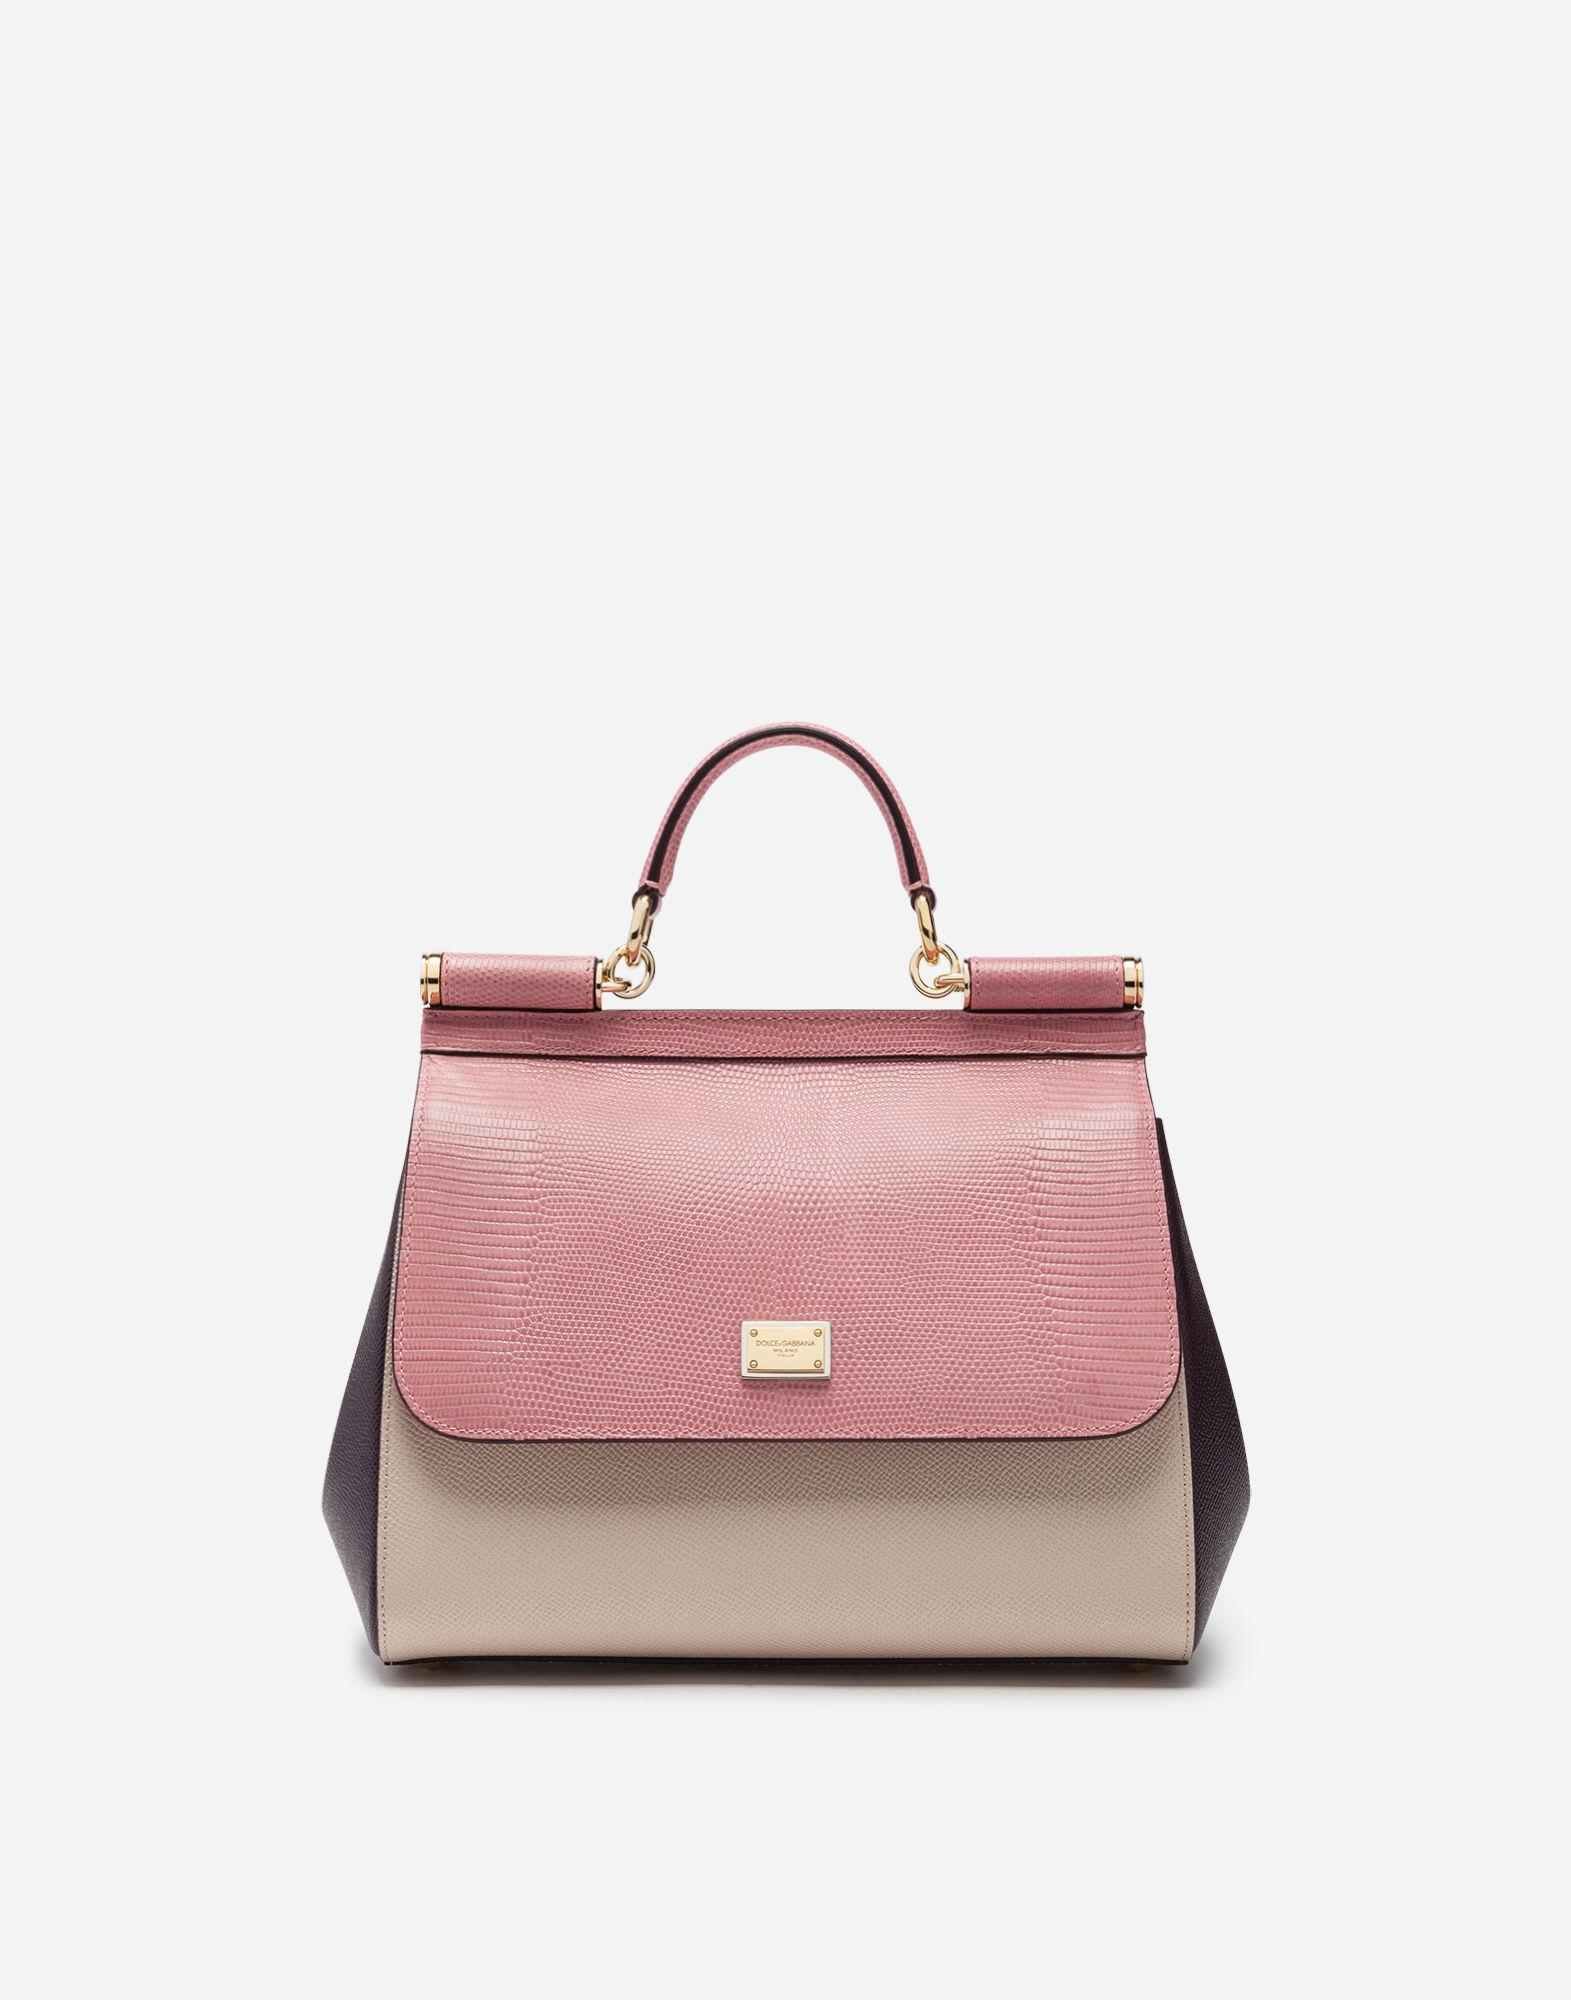 91d906602b0ea Lyst - Dolce   Gabbana Medium Sicily Bag In Mix Of Materials in Pink